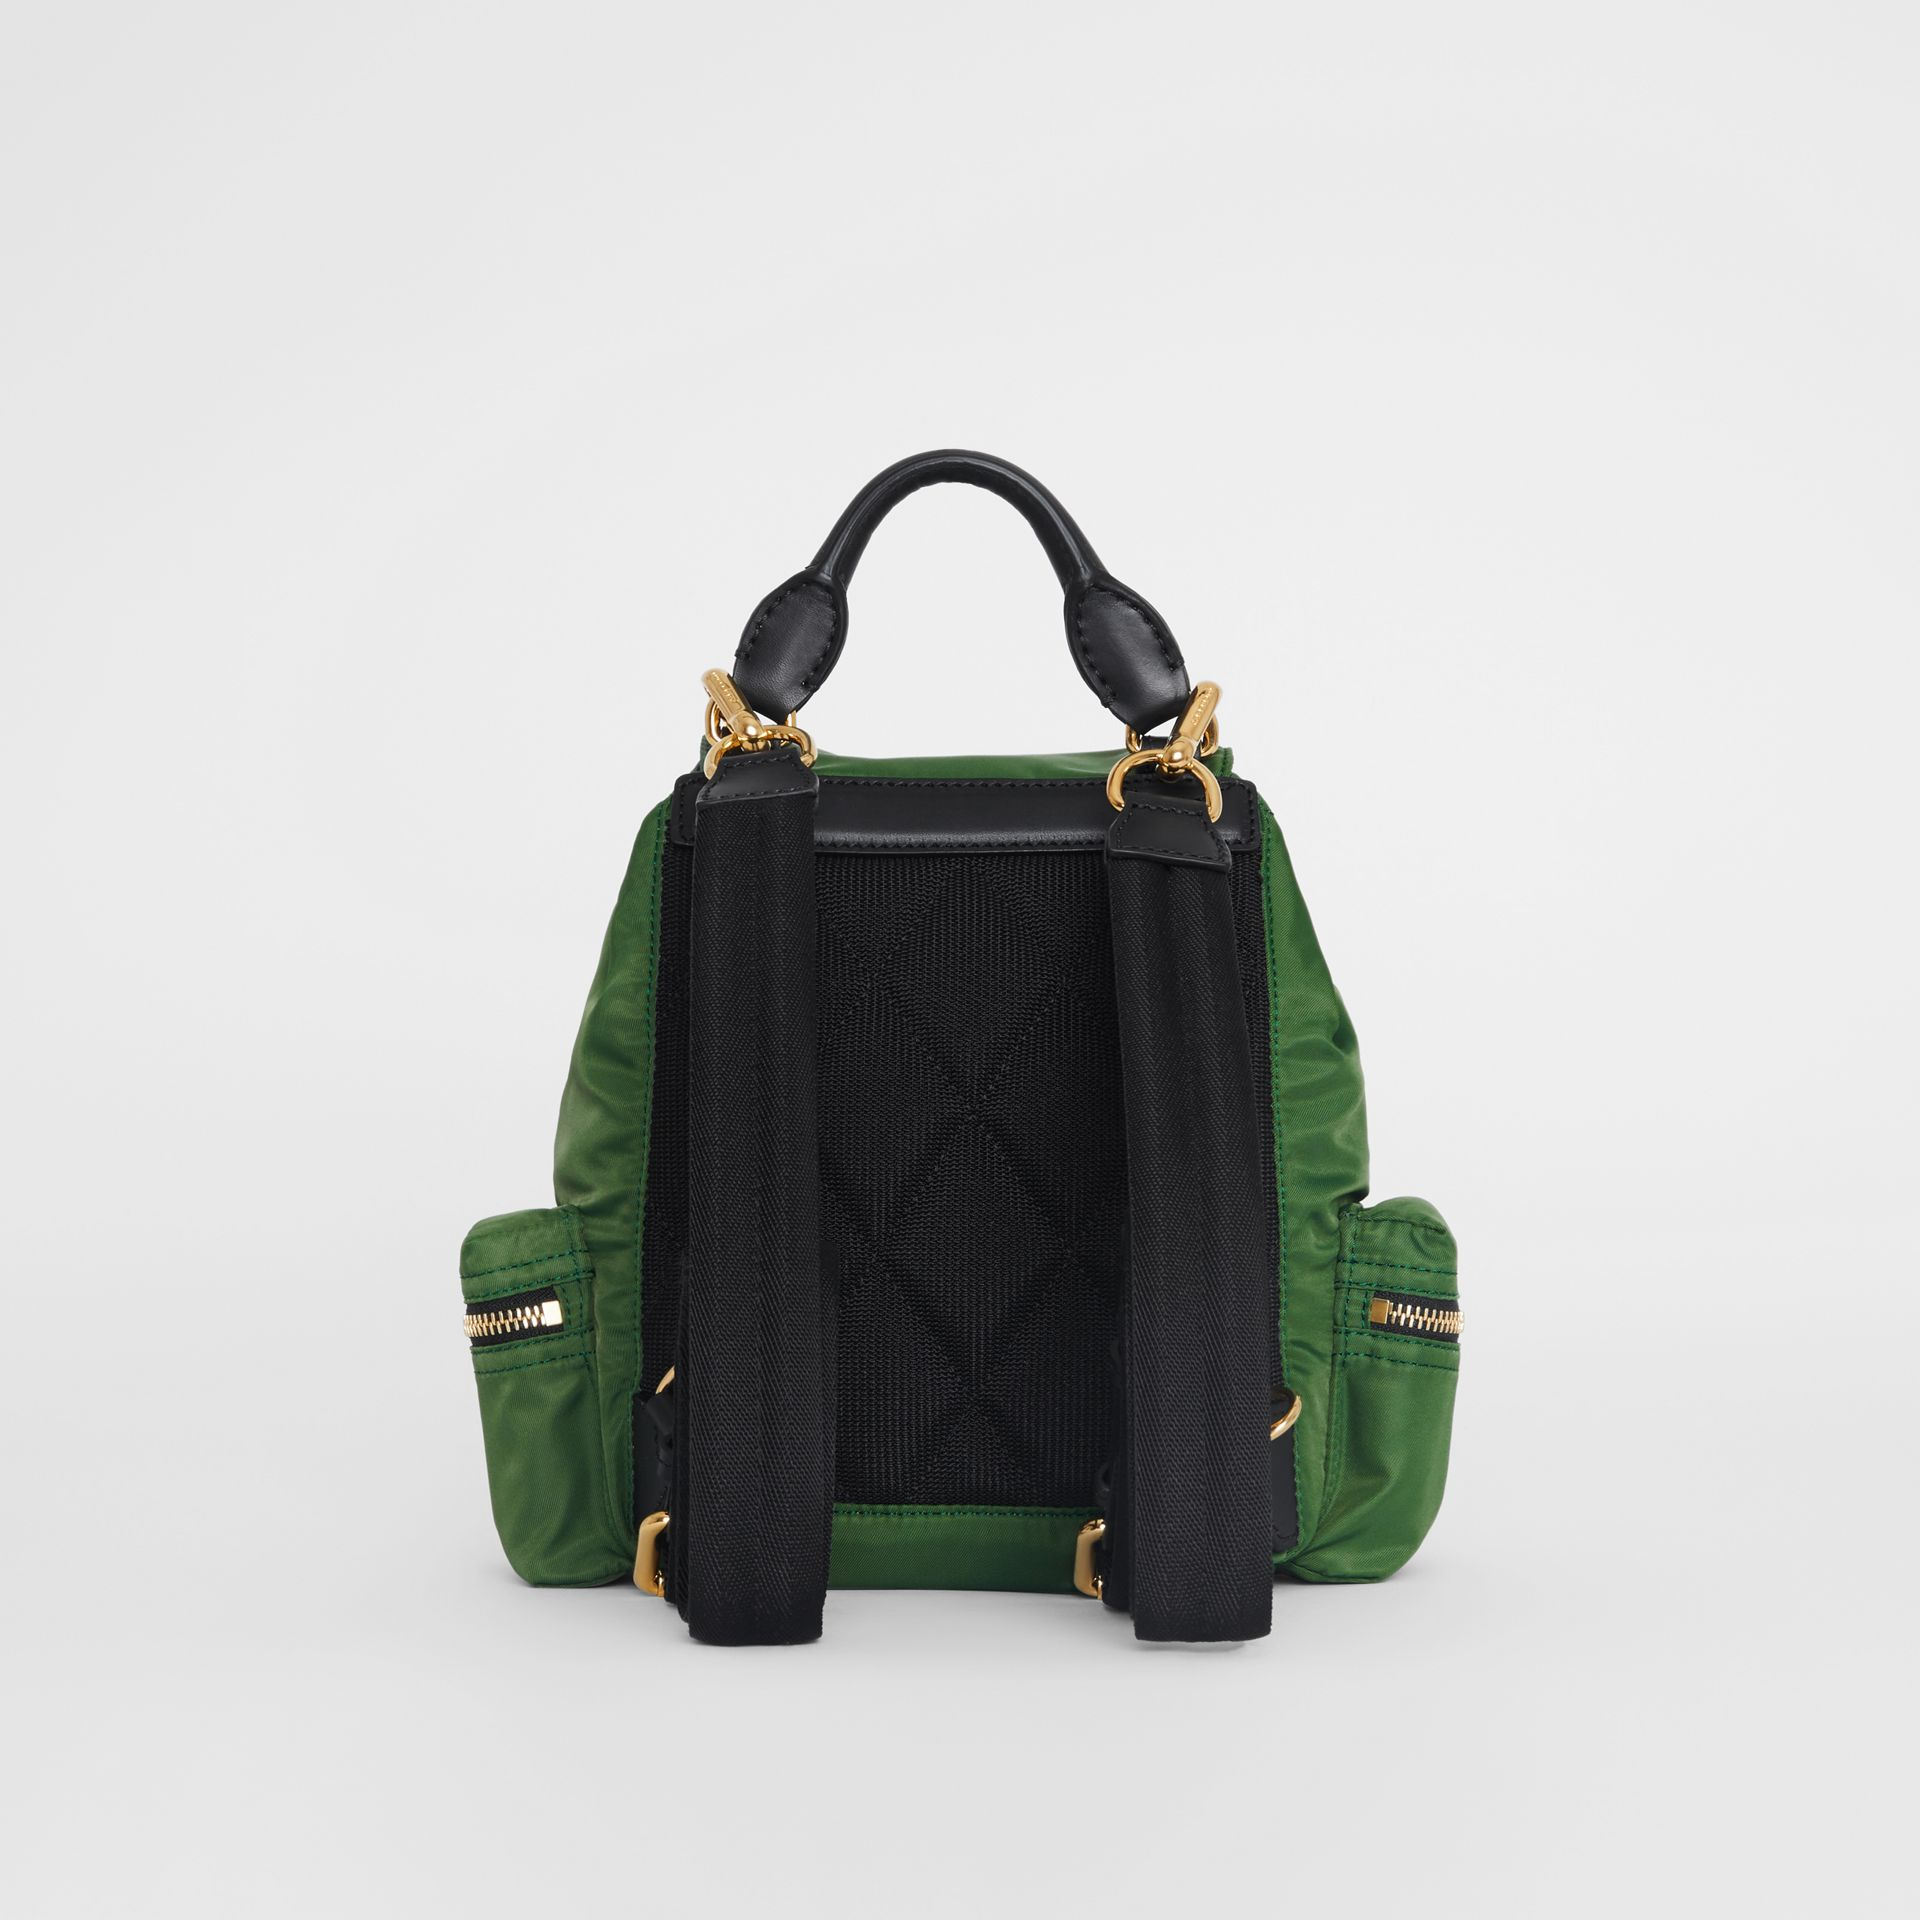 Petit sac The Rucksack à bandoulière en nylon (Vert Racing) - Femme | Burberry - photo de la galerie 7